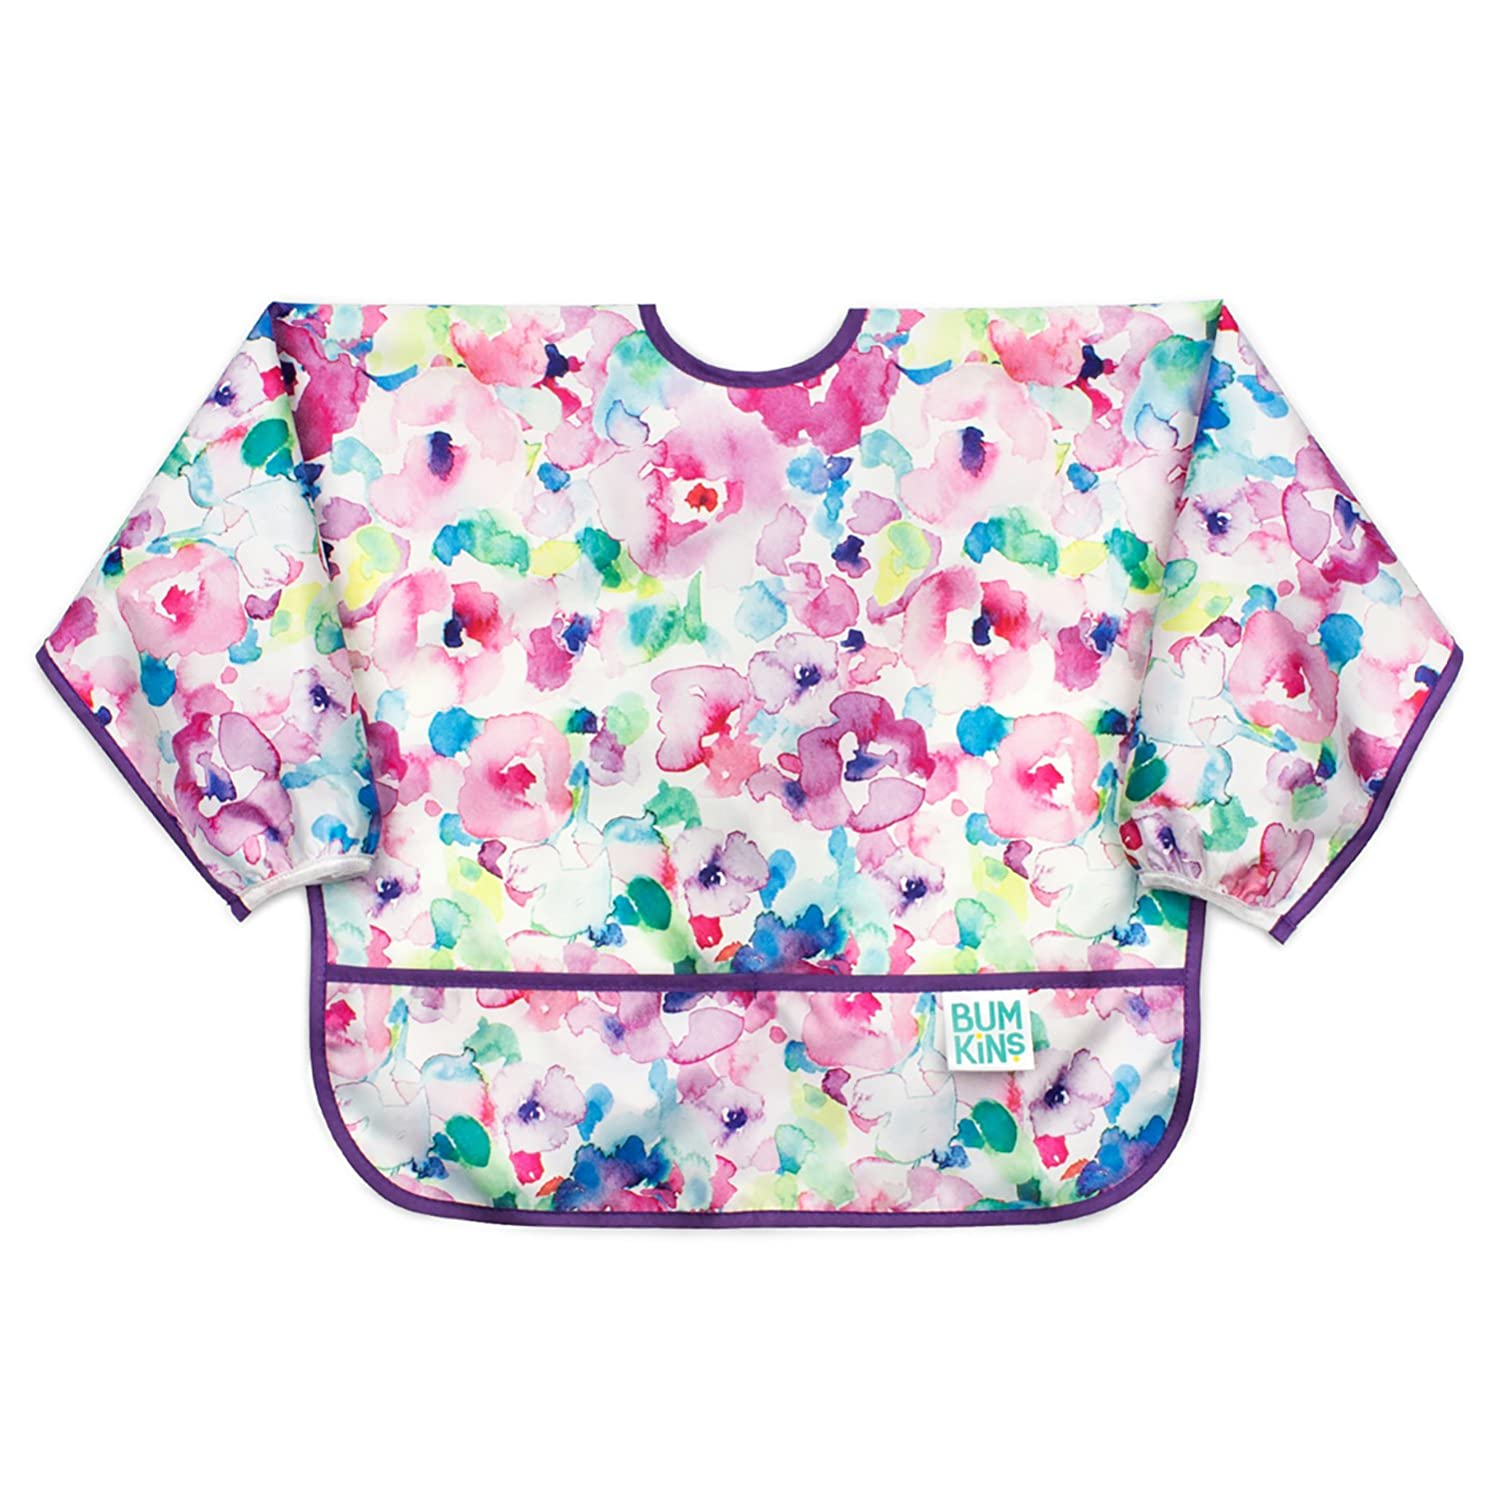 Bumkins Waterproof Sleeved Bib, Watercolor, 6-24 Months SU-32